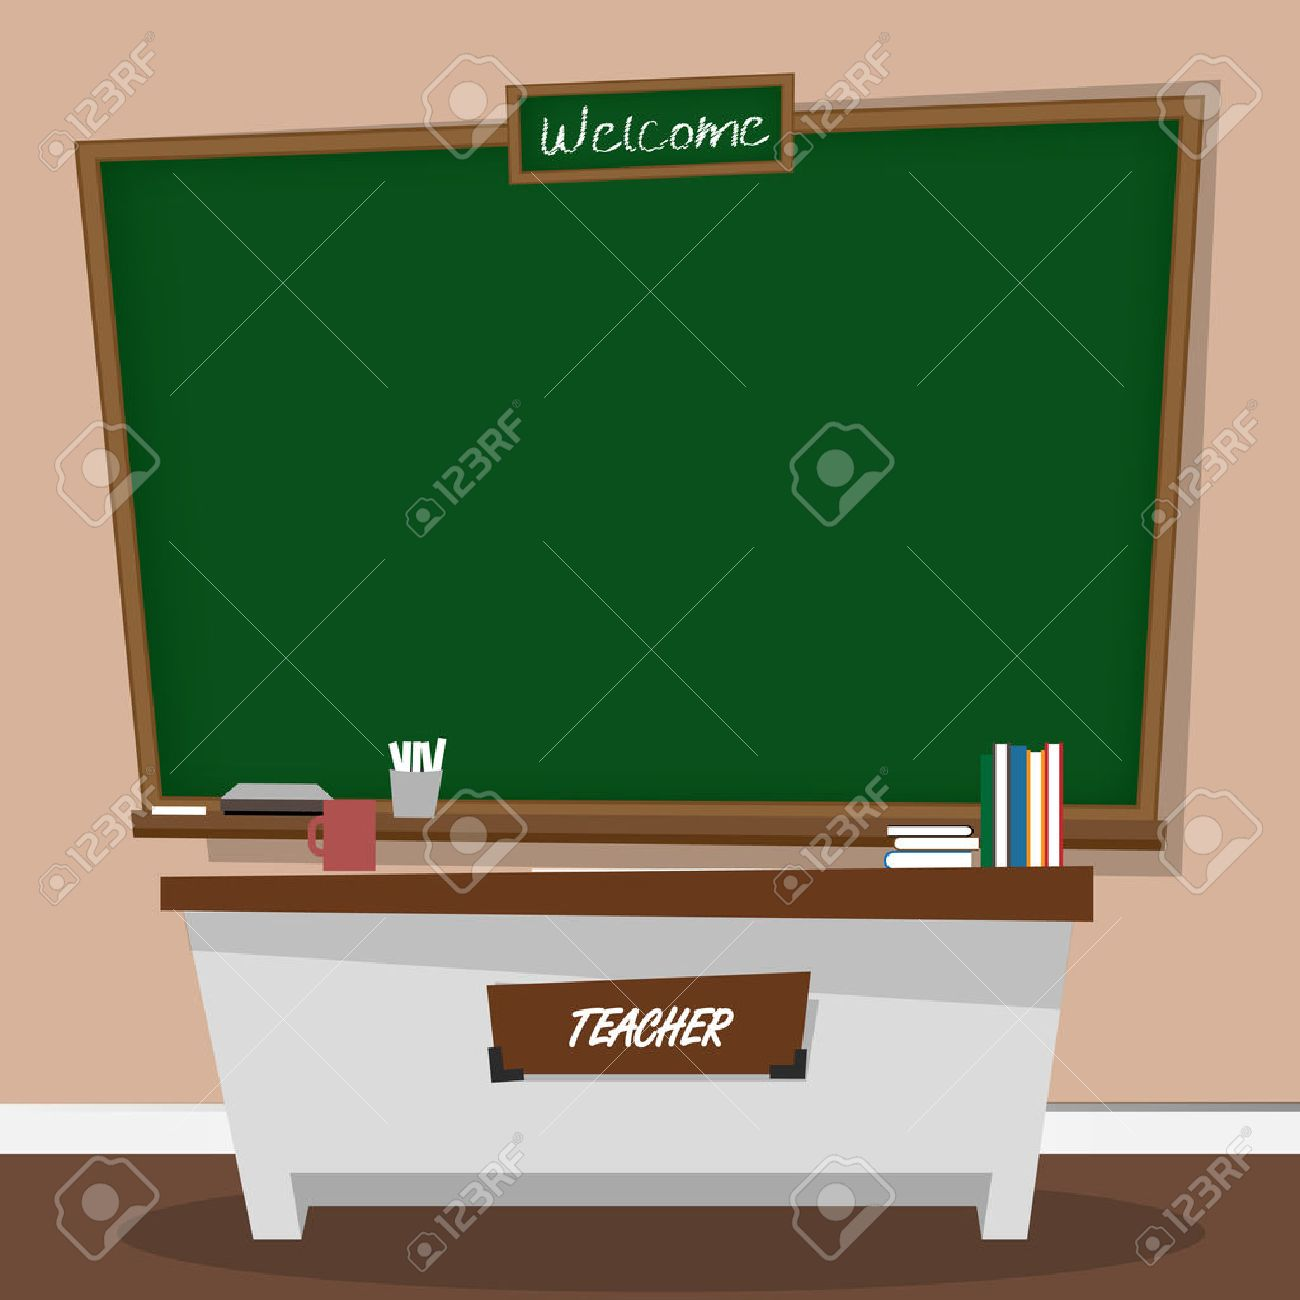 Vector illustration of classic chalkboard in classroom Stock Vector - 48842513